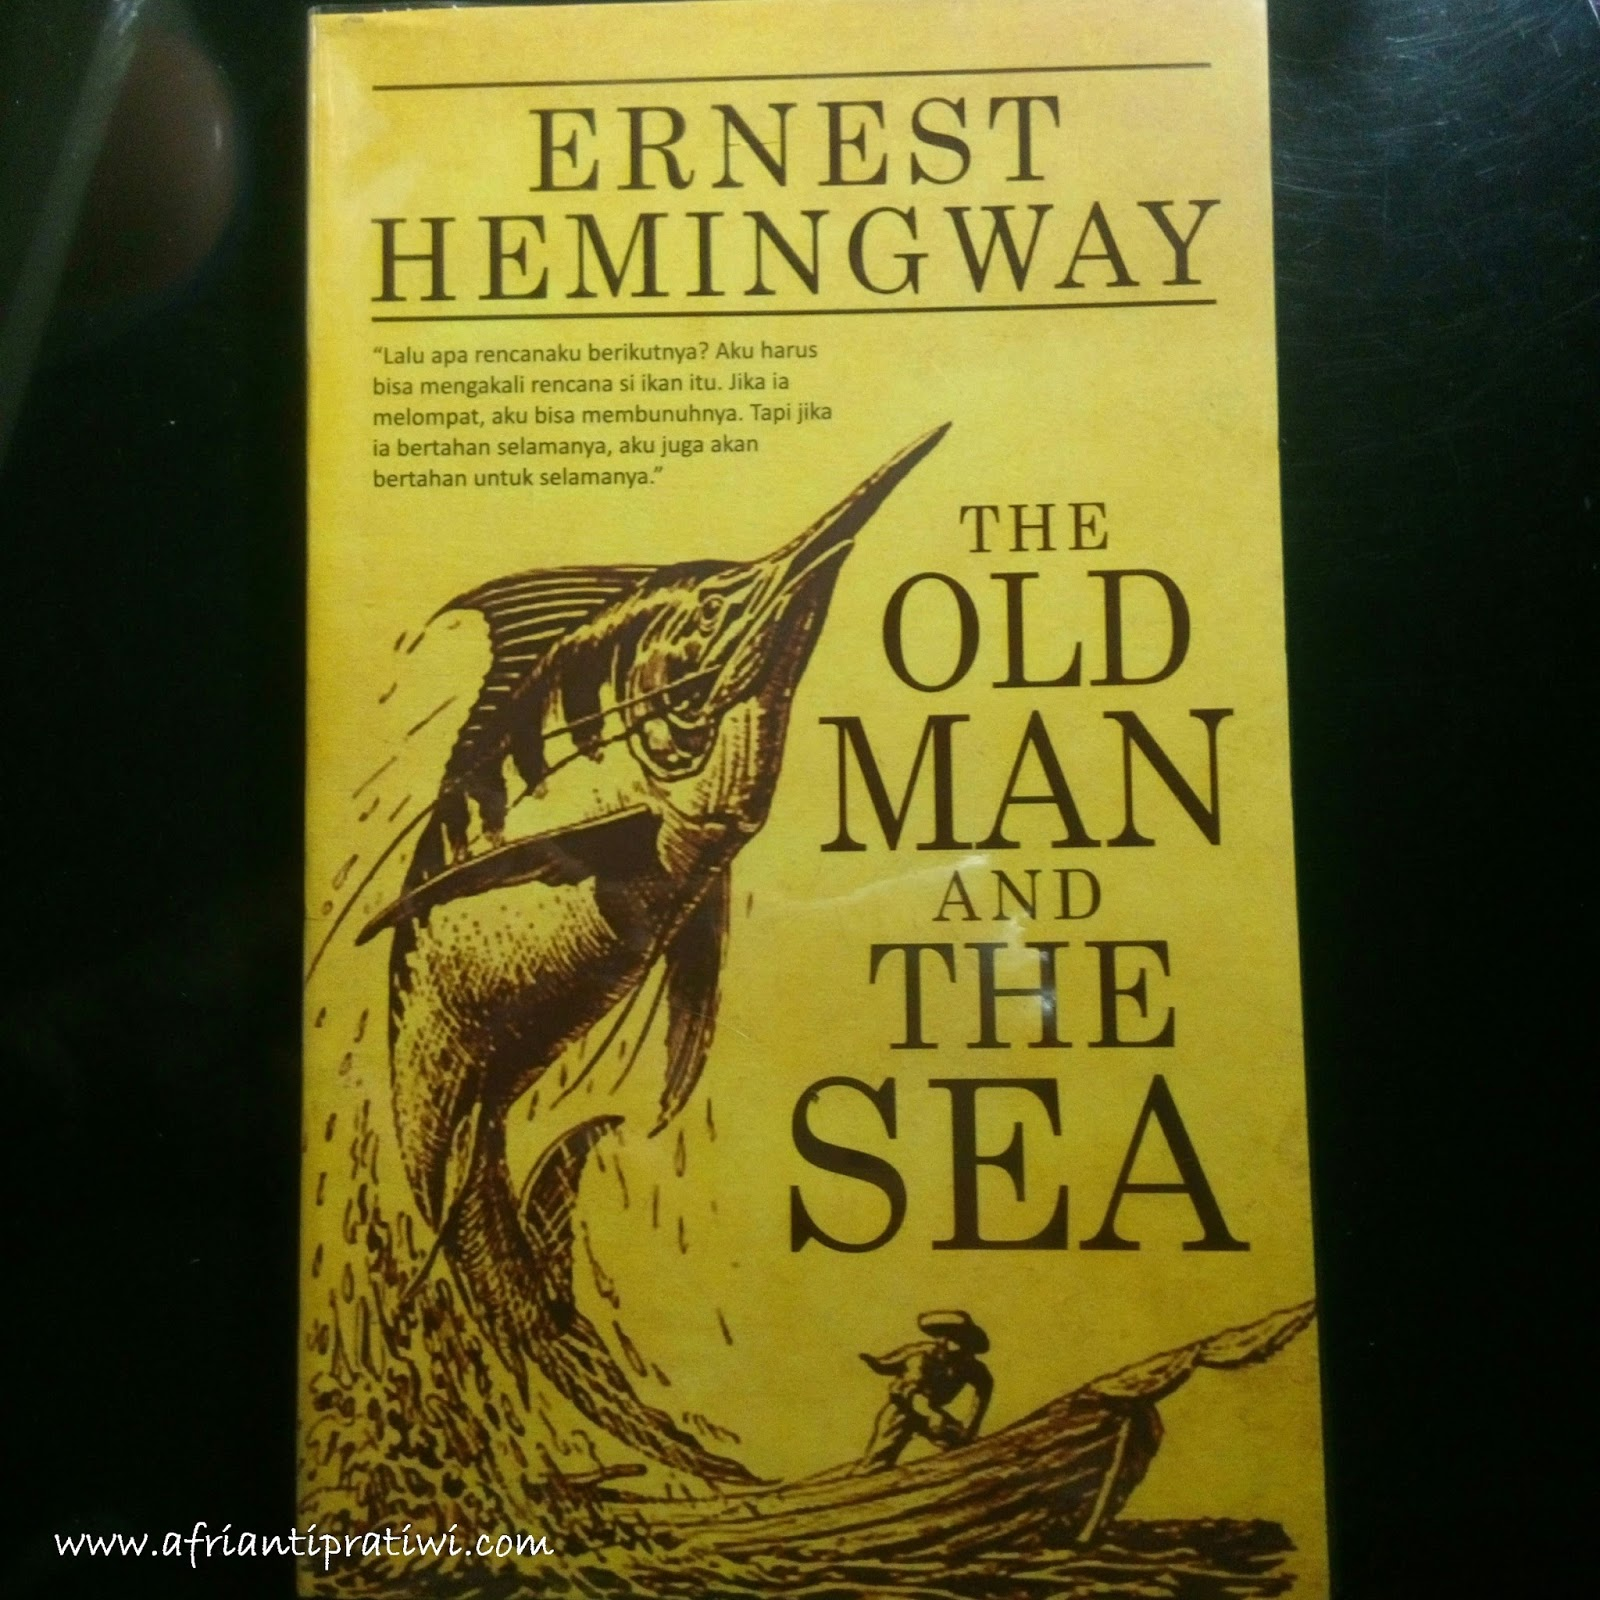 plot summary of the old man and the sea essay The old man's most notable attribute, however, appears to be his unquenchable spirit: no matter how his body is beaten, his spirit remains undefeated, undefeatable, through all.